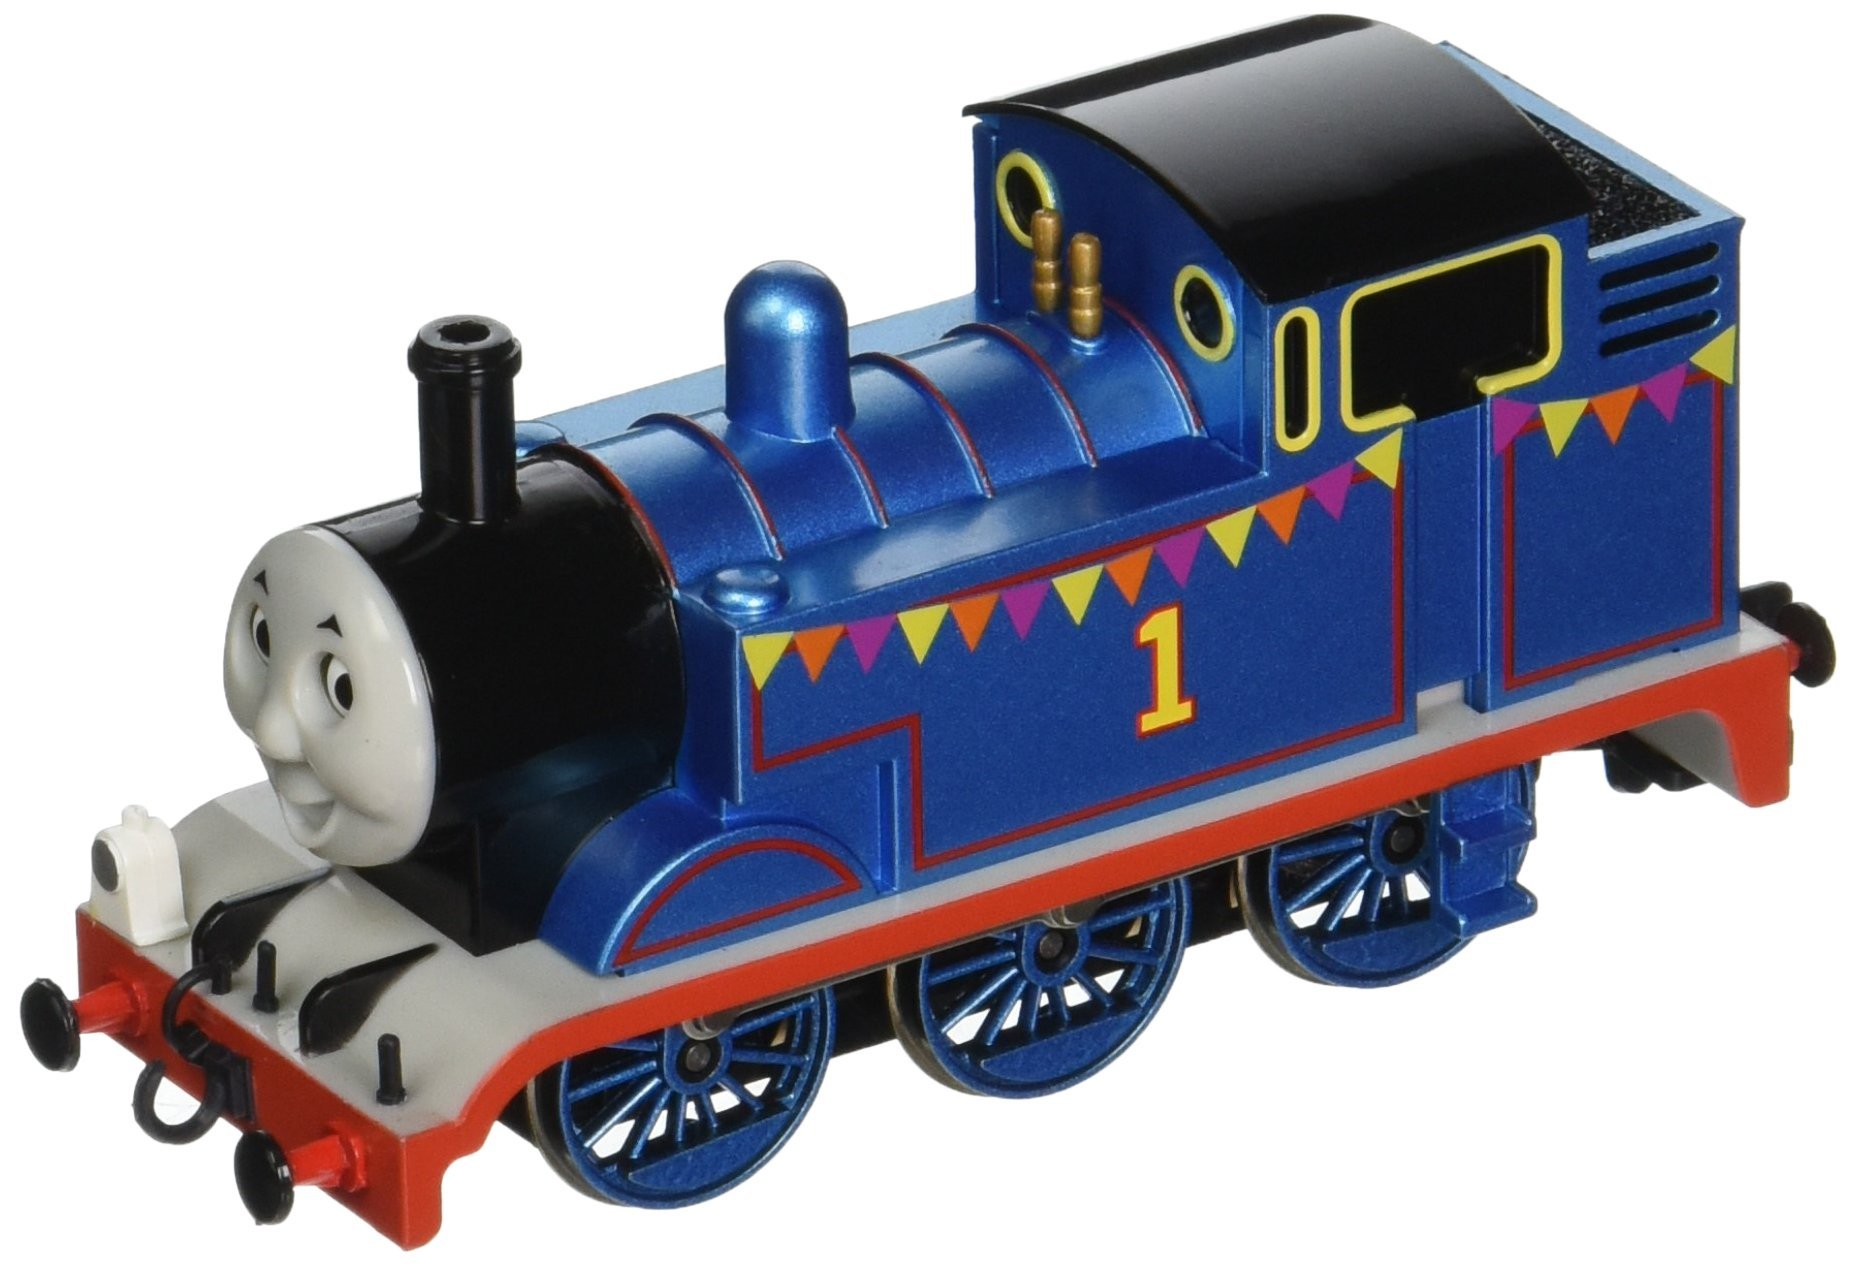 Bachmann Celebration Thomas Locomotive with Moving Eyes Train by Bachmann Trains